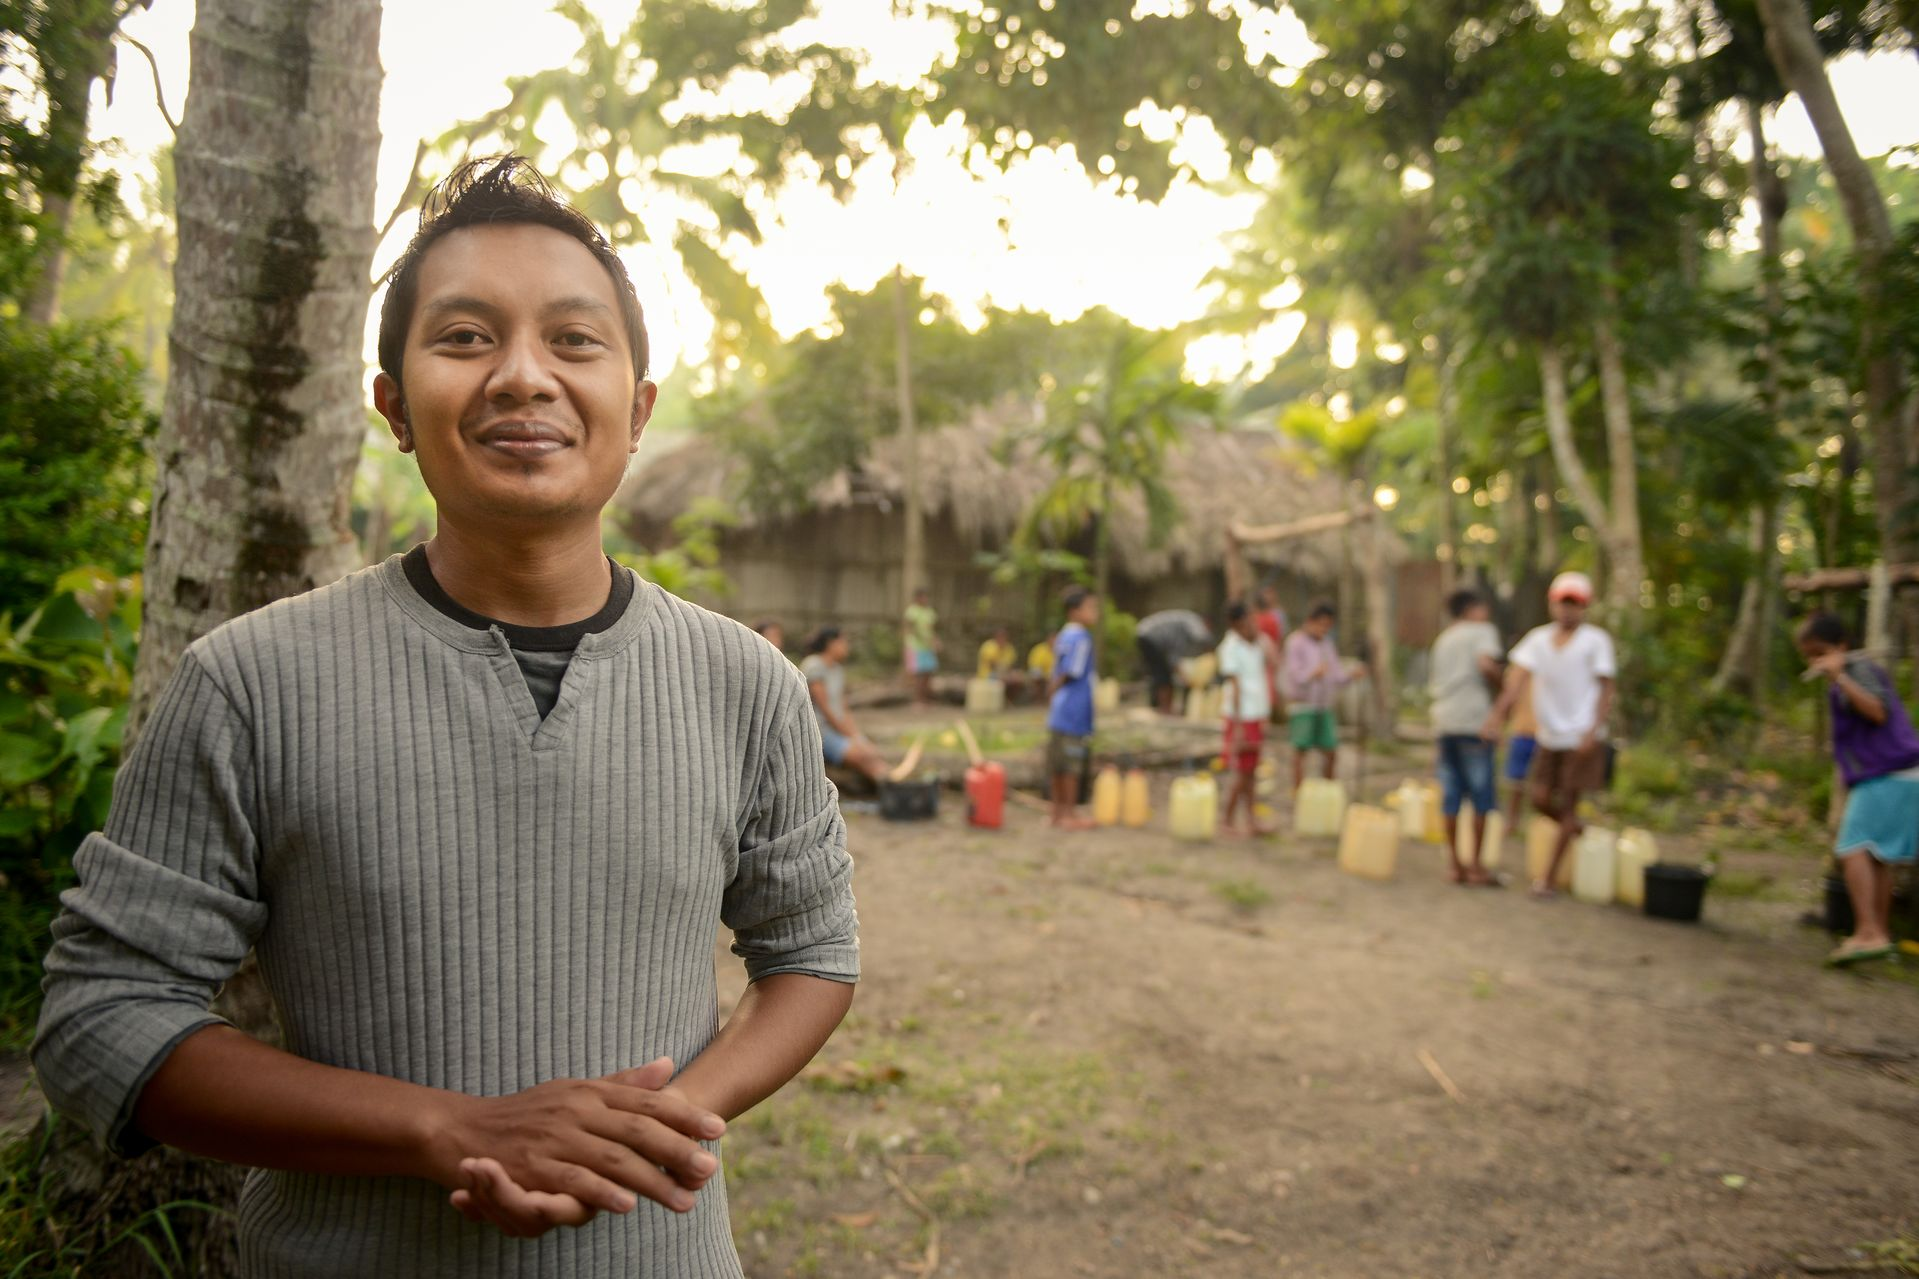 A man in a gray shirt stands outside in front of palm trees and a grass thatched building at sunset with people in a line in the background gathering water